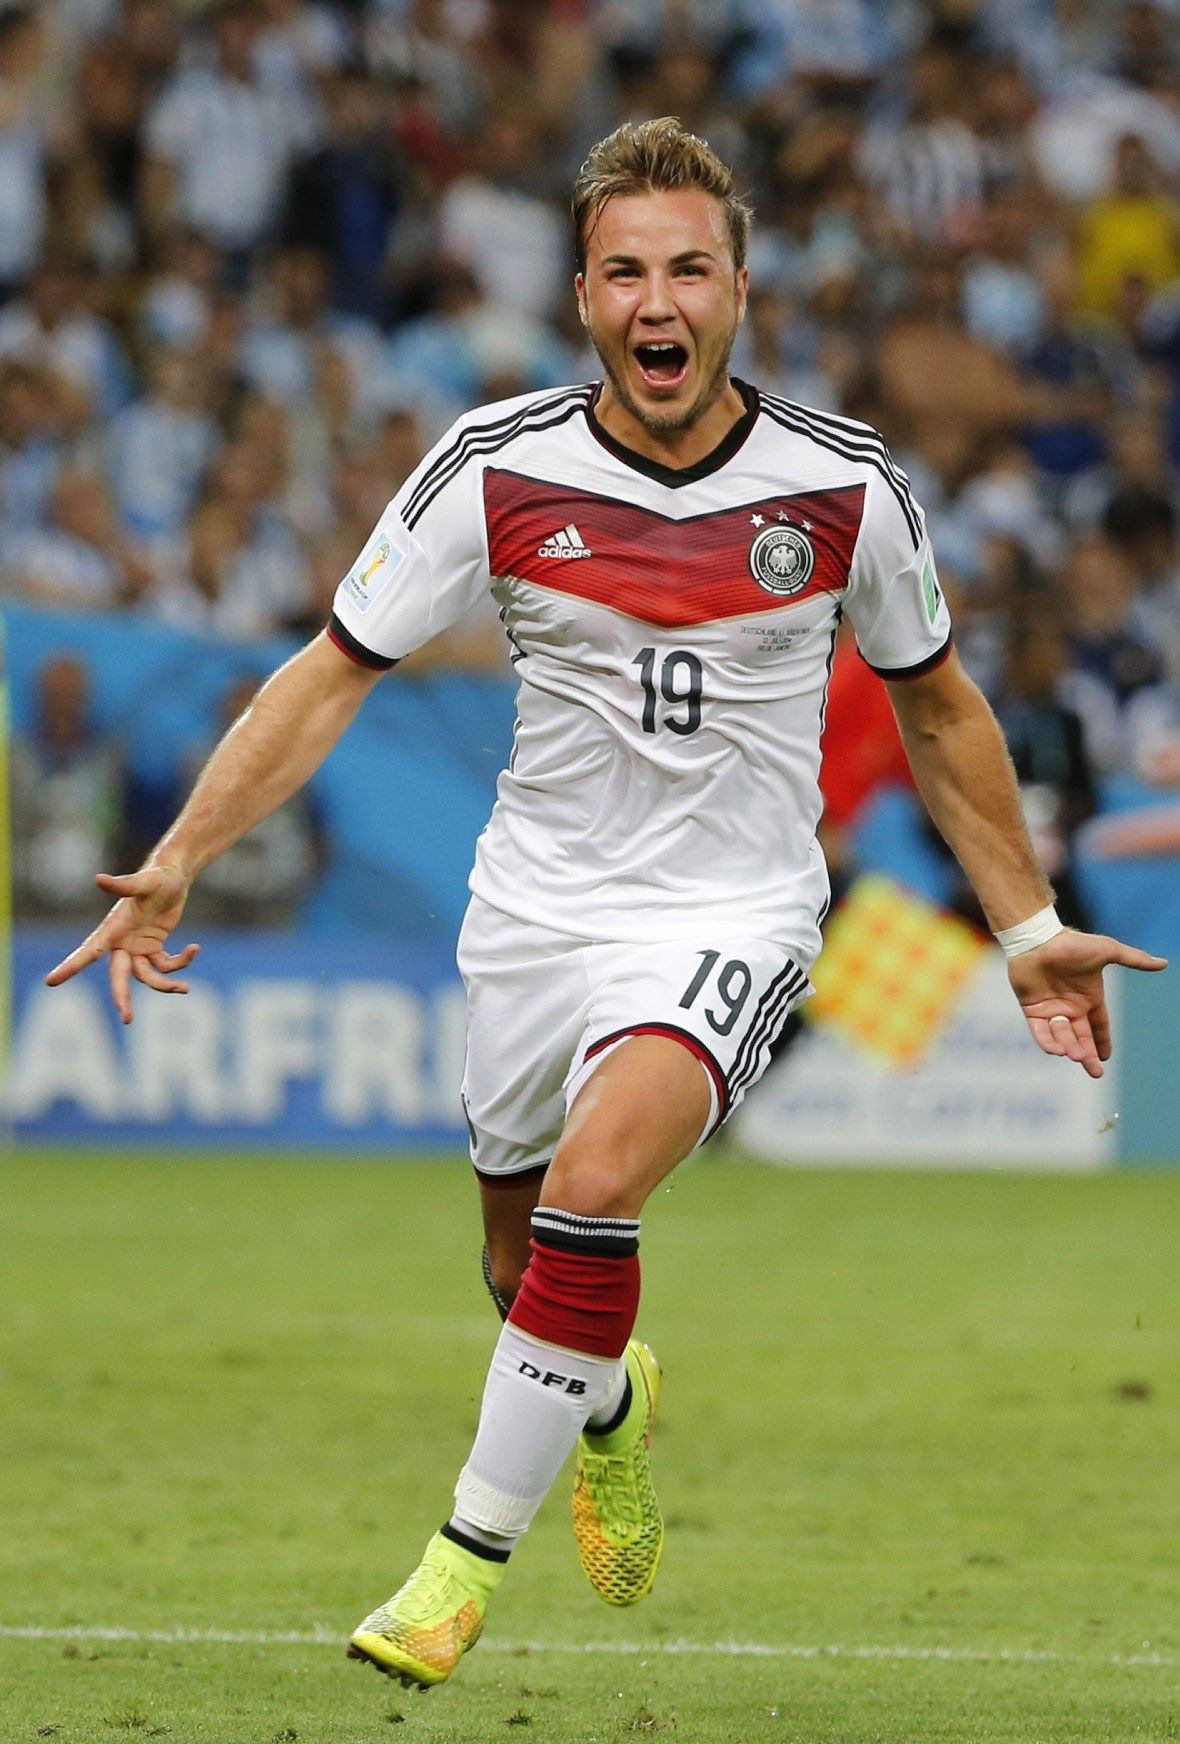 World Cup Final Argentina Vs Germany July 13 2014 Wc2014 Worldcup Worldcup2014 Germany Football German Football Players World Cup 2014